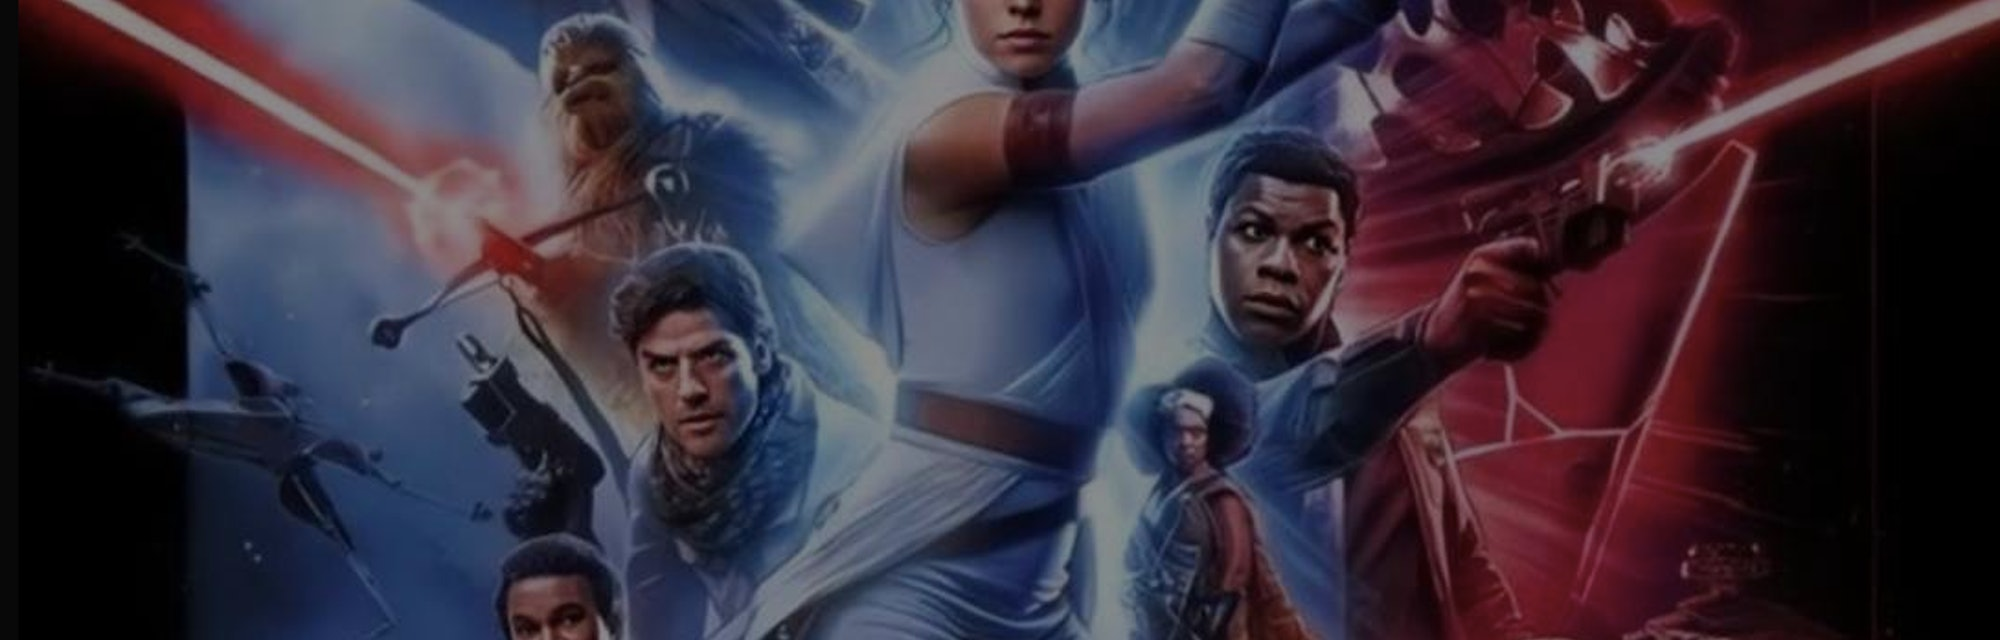 Star Wars 9 Theory The Return Of An Iconic Song May Tease Prequel Cameos